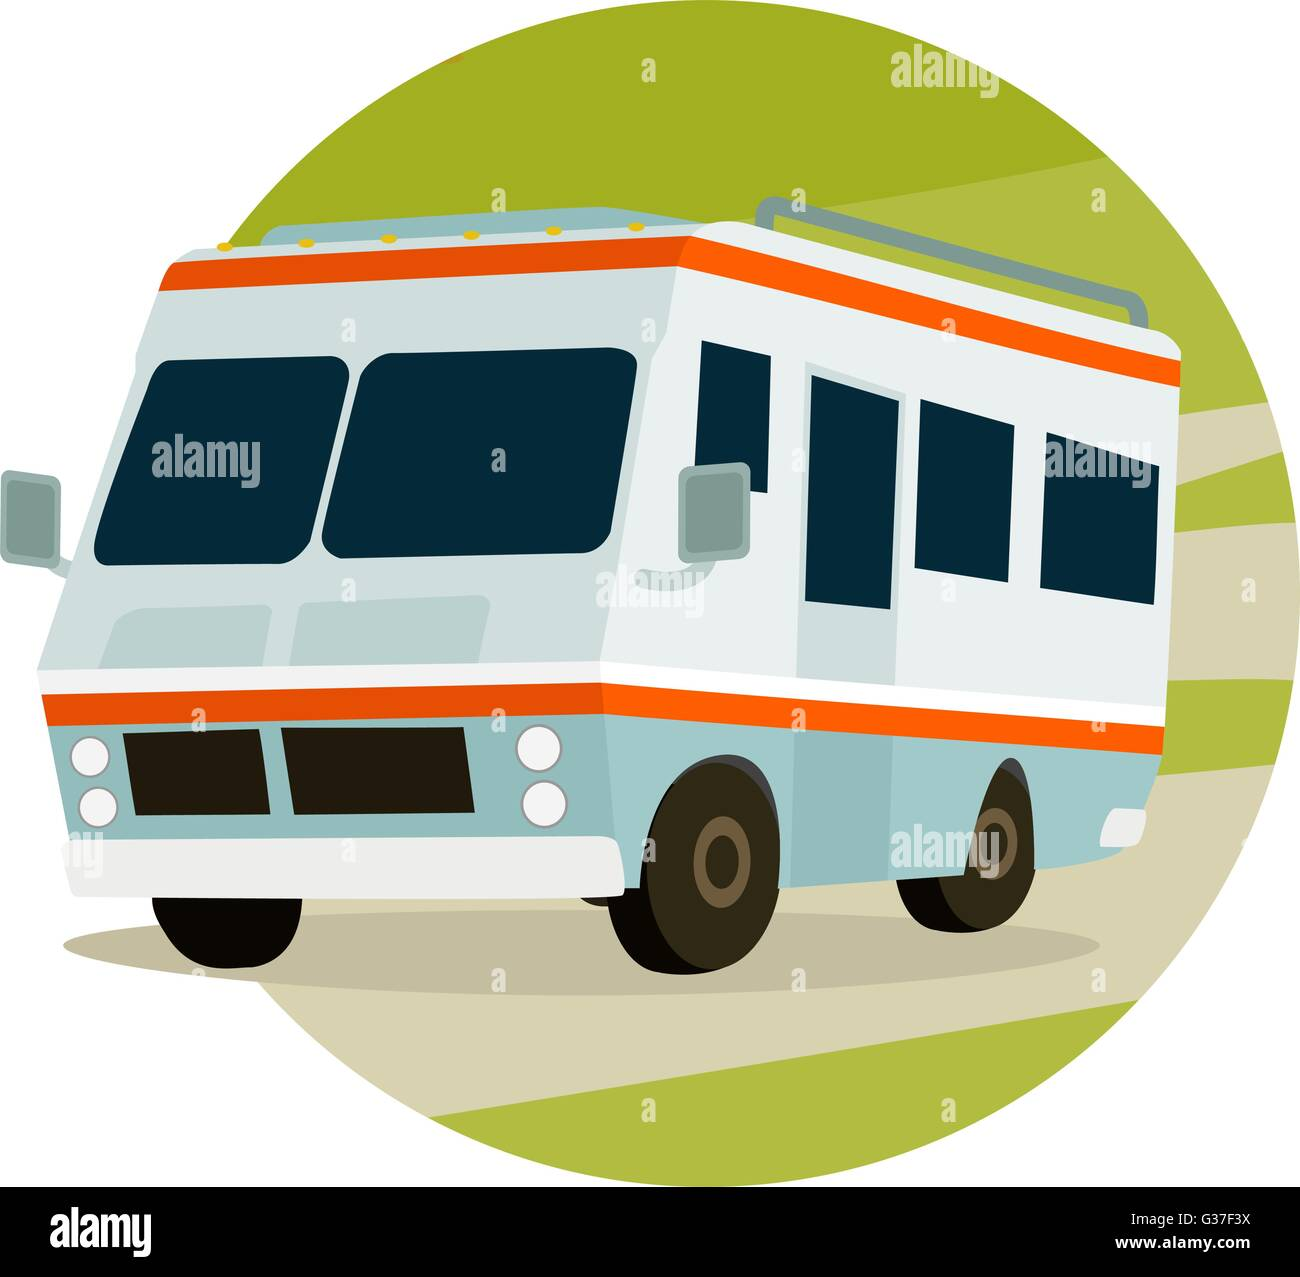 RV in mountains on a circle, travel icon - Stock Vector